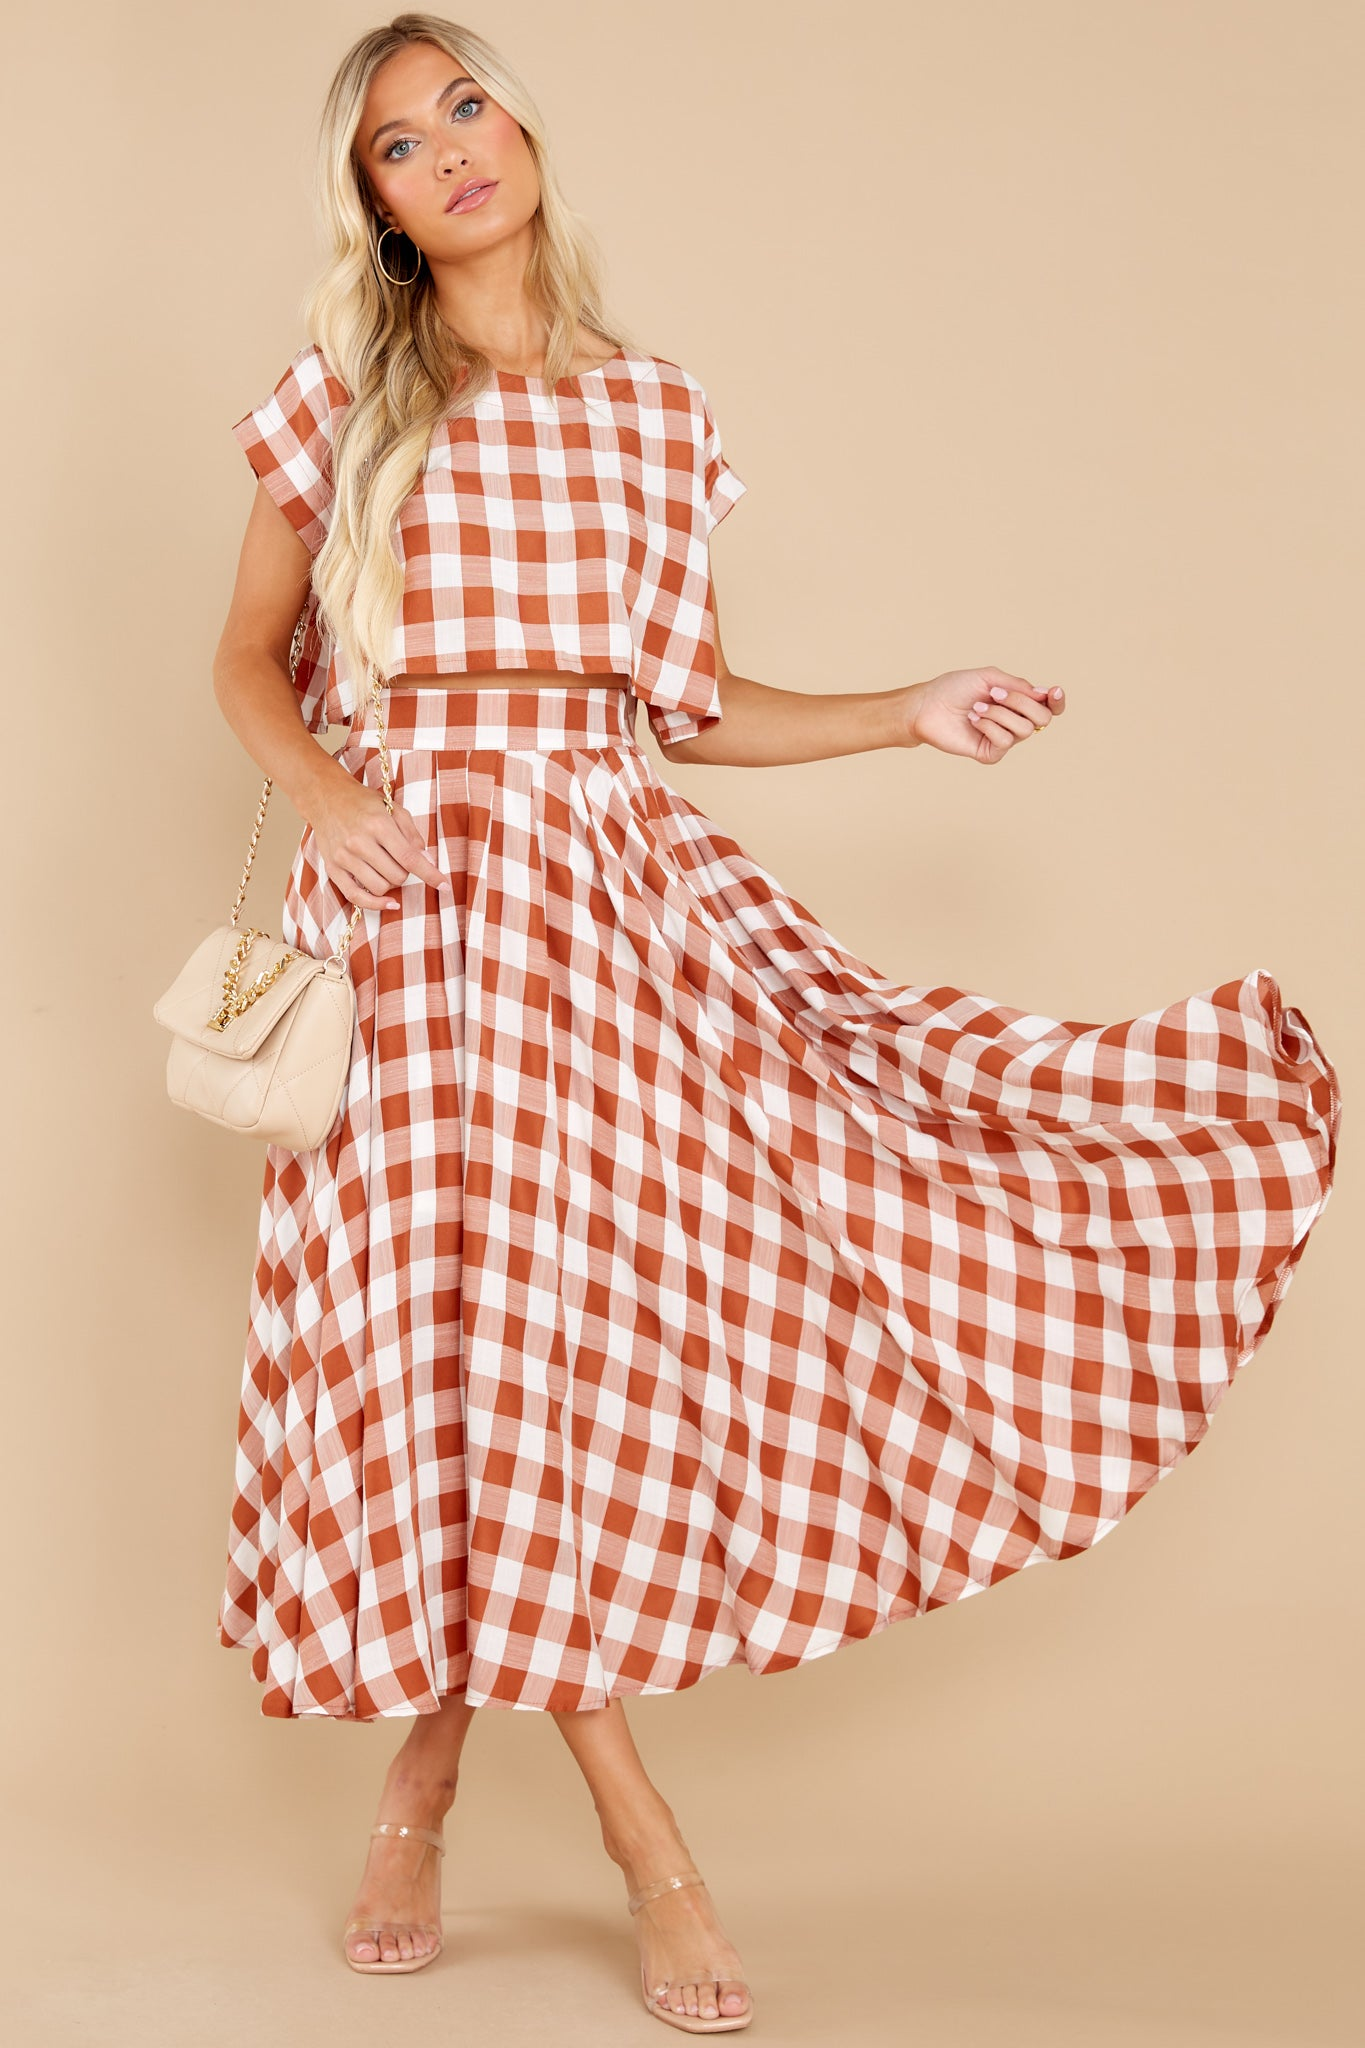 Vintage Western Wear Clothing, Outfit Ideas Leaps Of Time Rust Gingham Two Piece Set Orange $62.00 AT vintagedancer.com